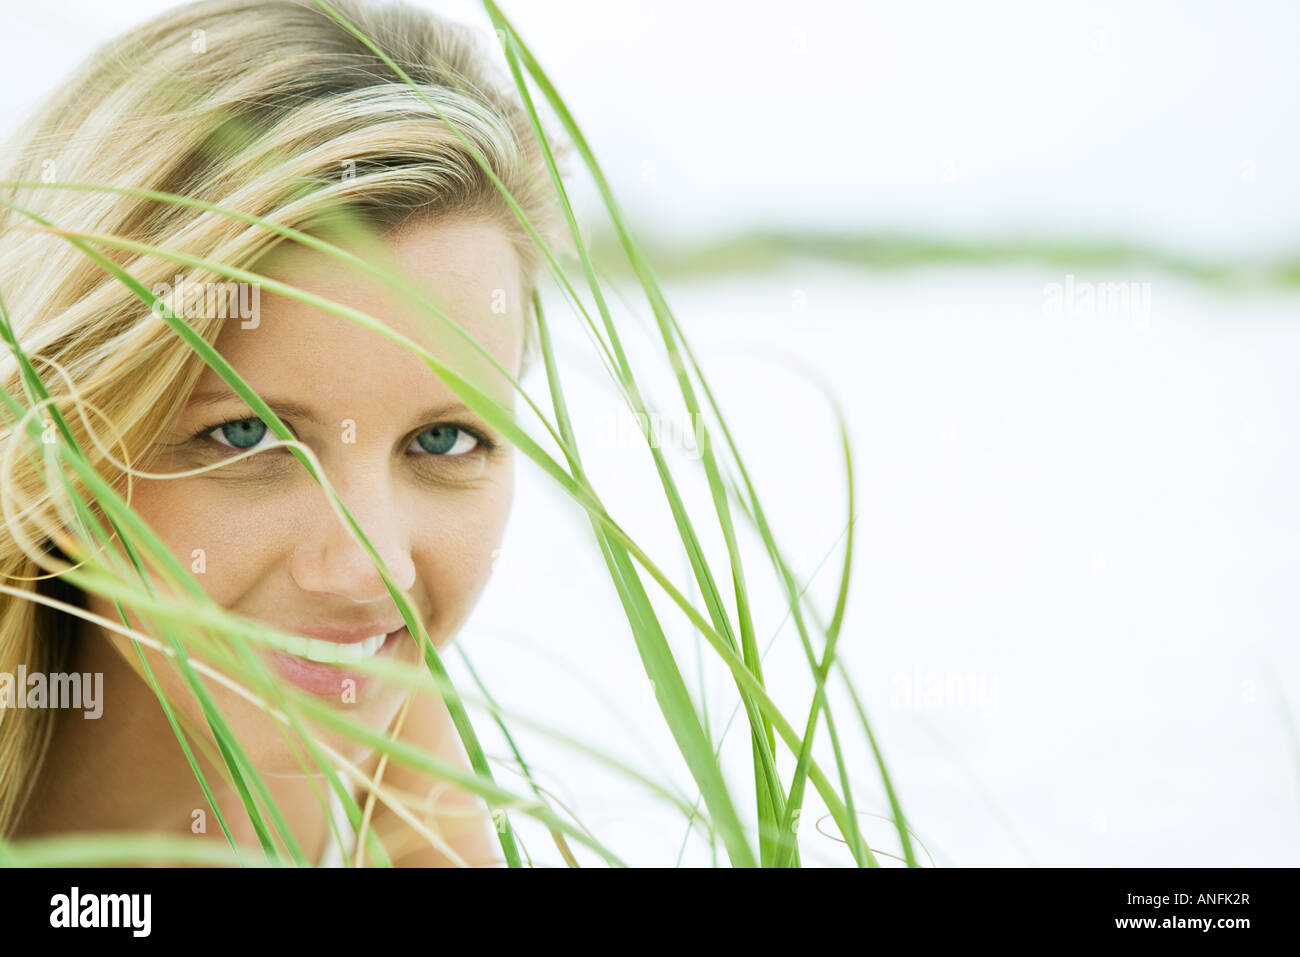 Woman looking through grass, close-up - Stock Image